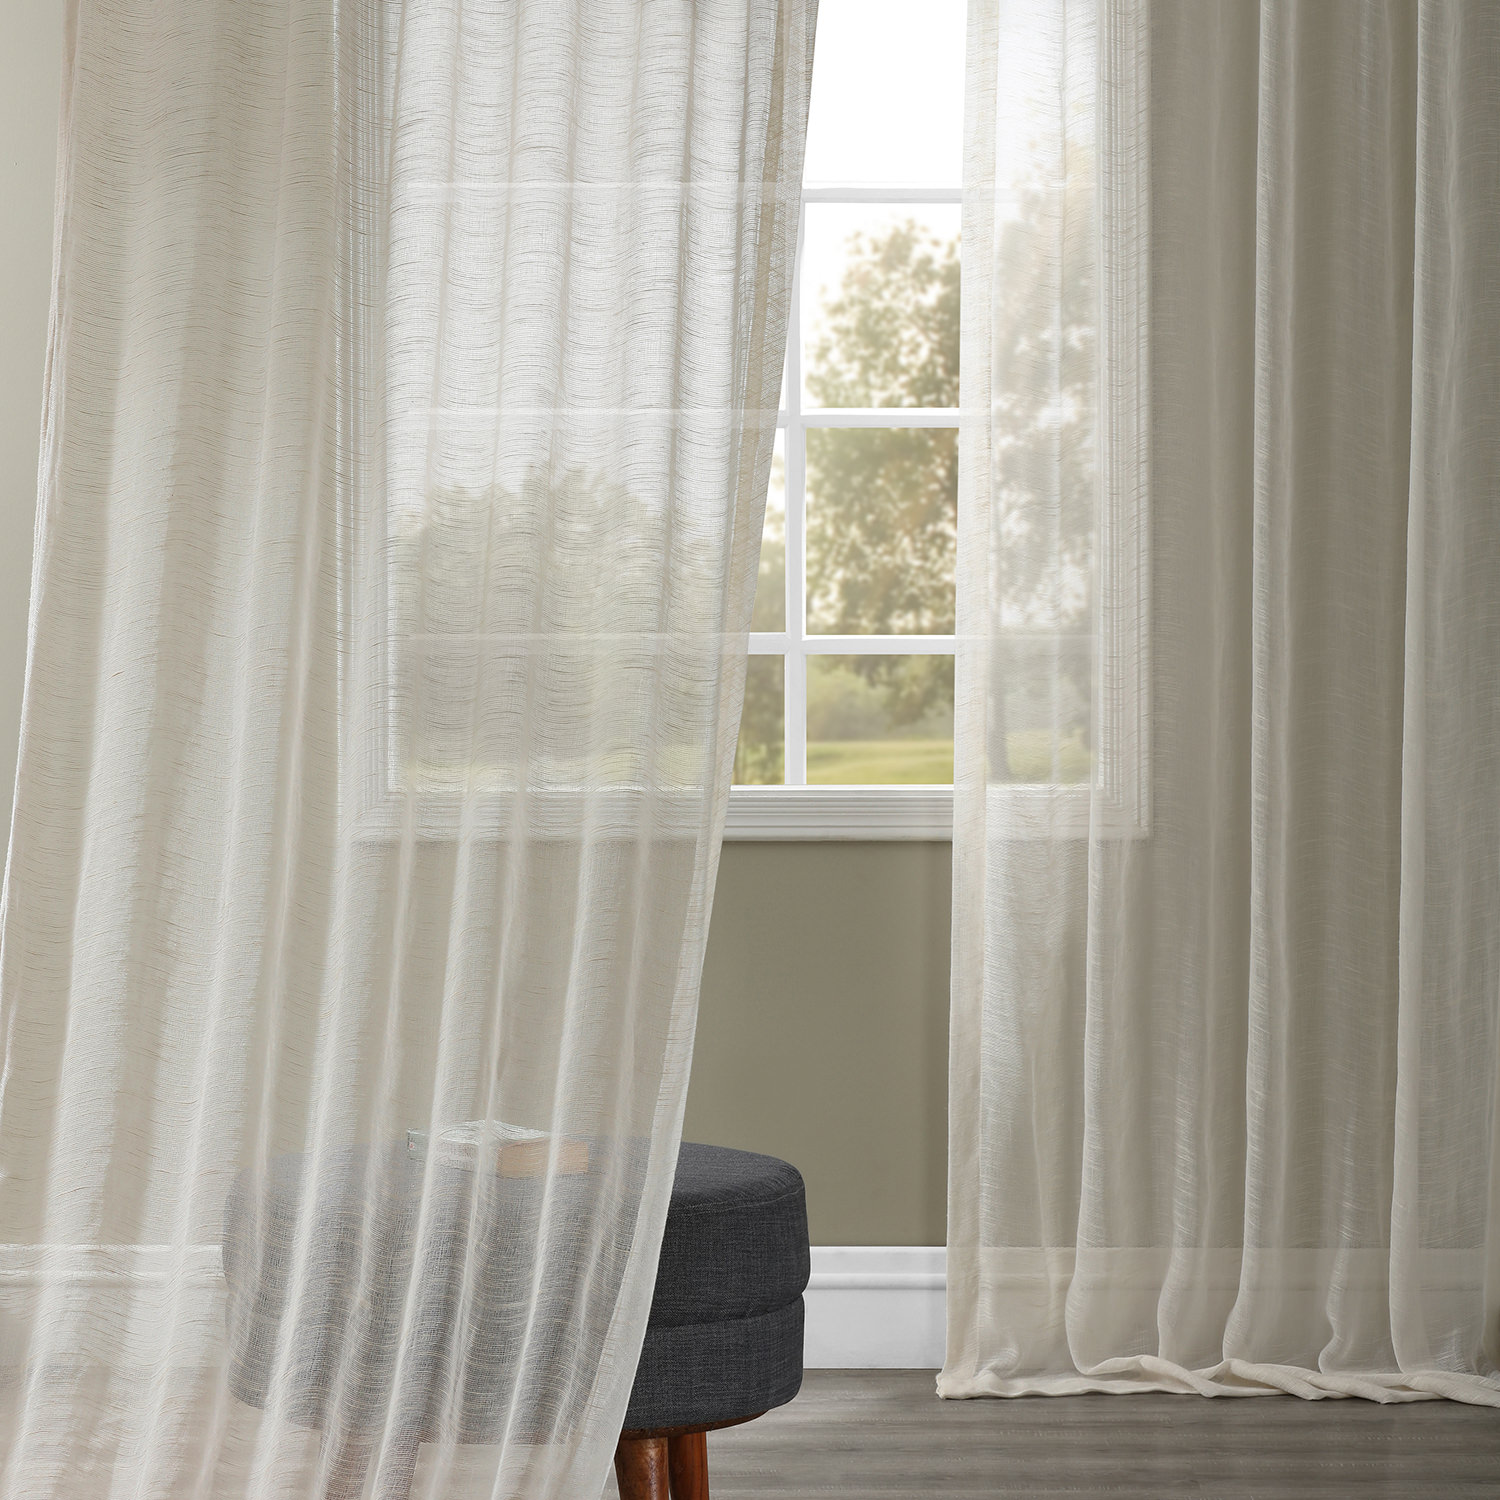 com sheer better color panel ip and curtain gardens curtains walmart homes embroidered fall